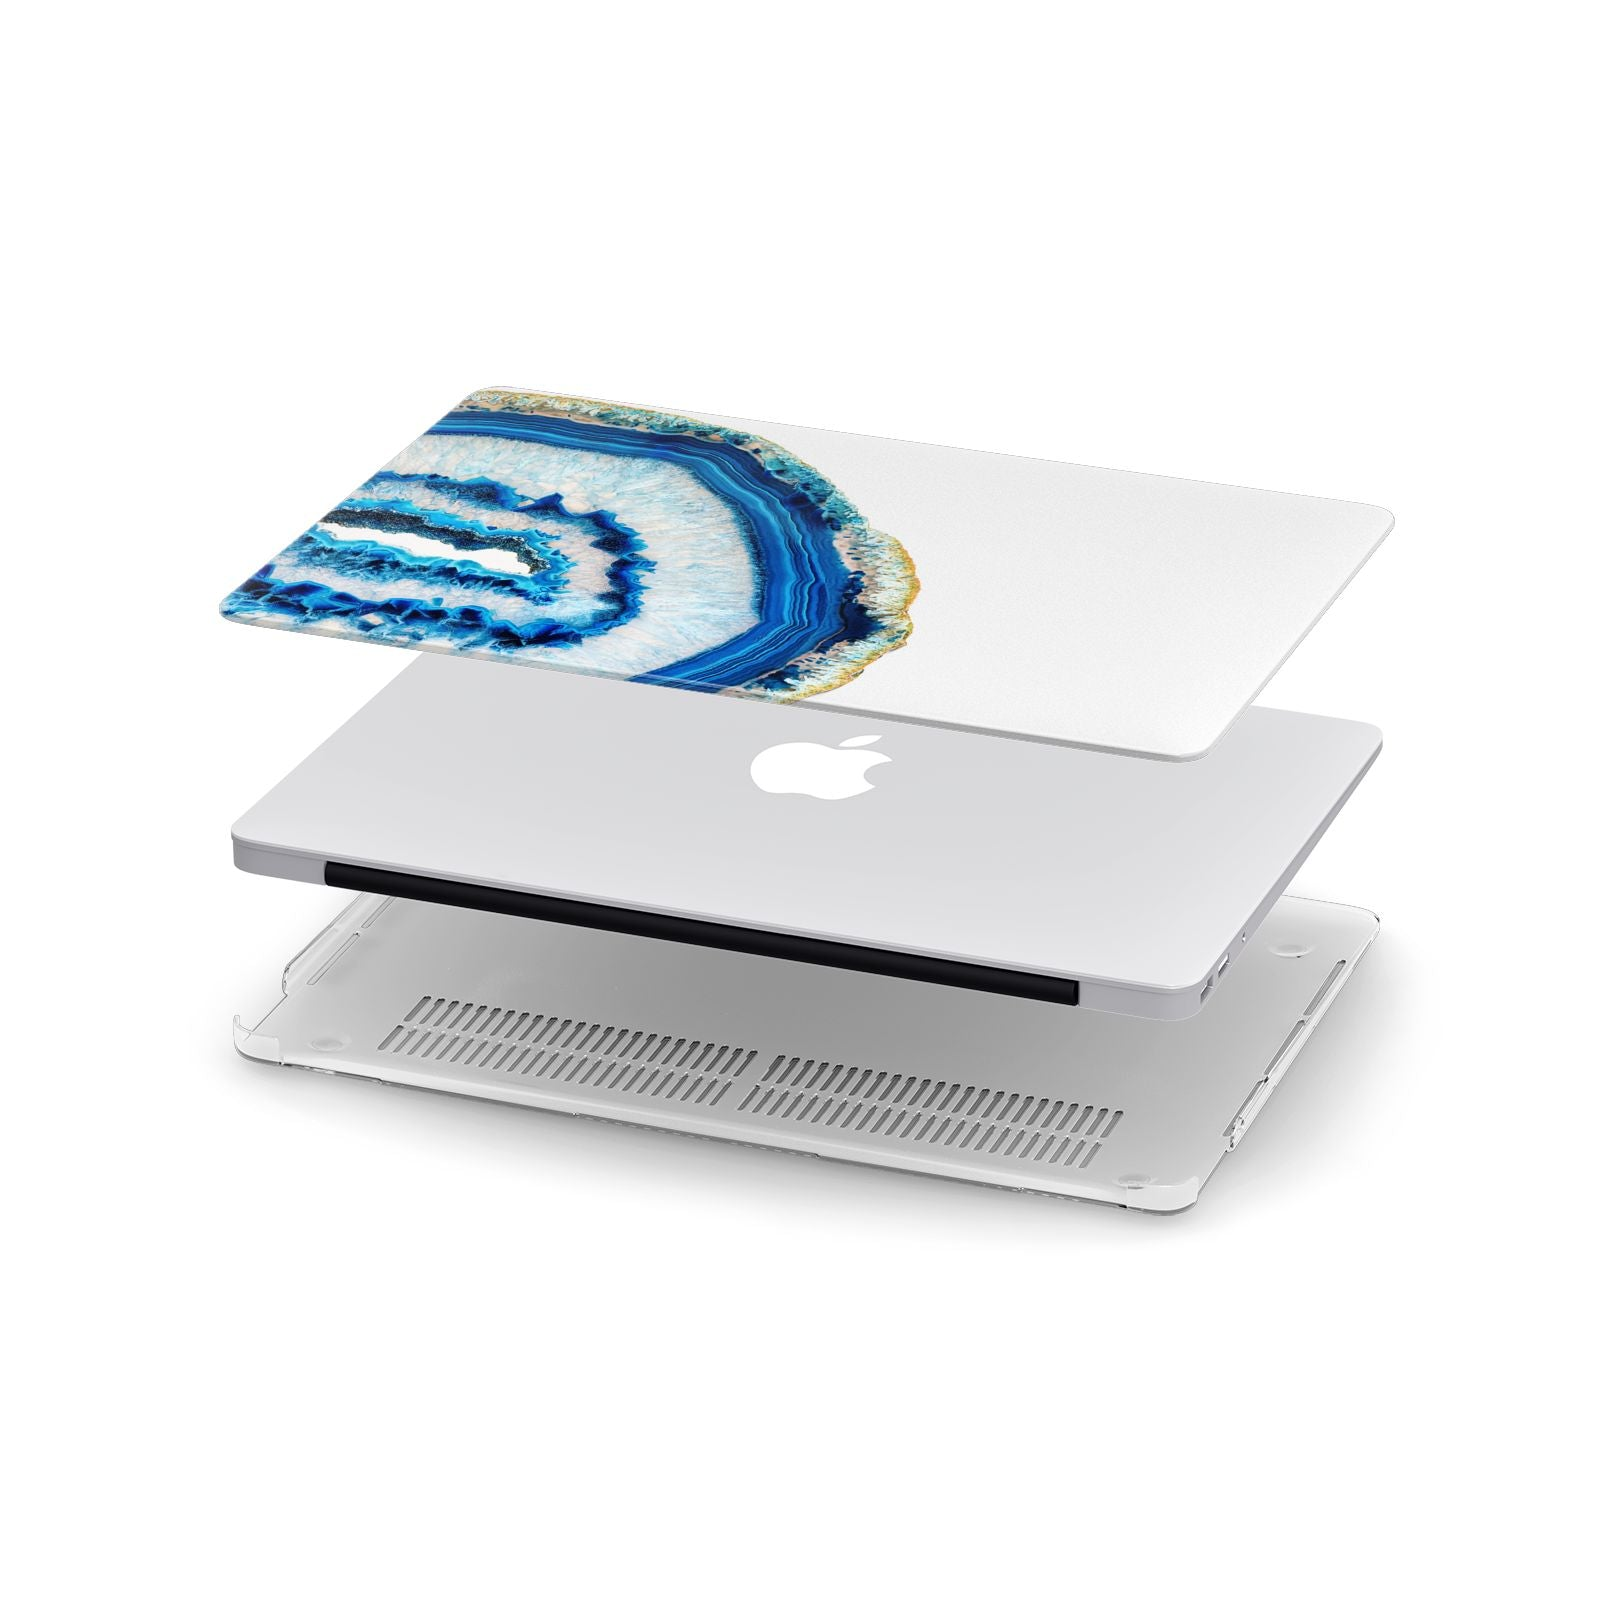 Agate Dark Blue and Turquoise Apple MacBook Case in Detail